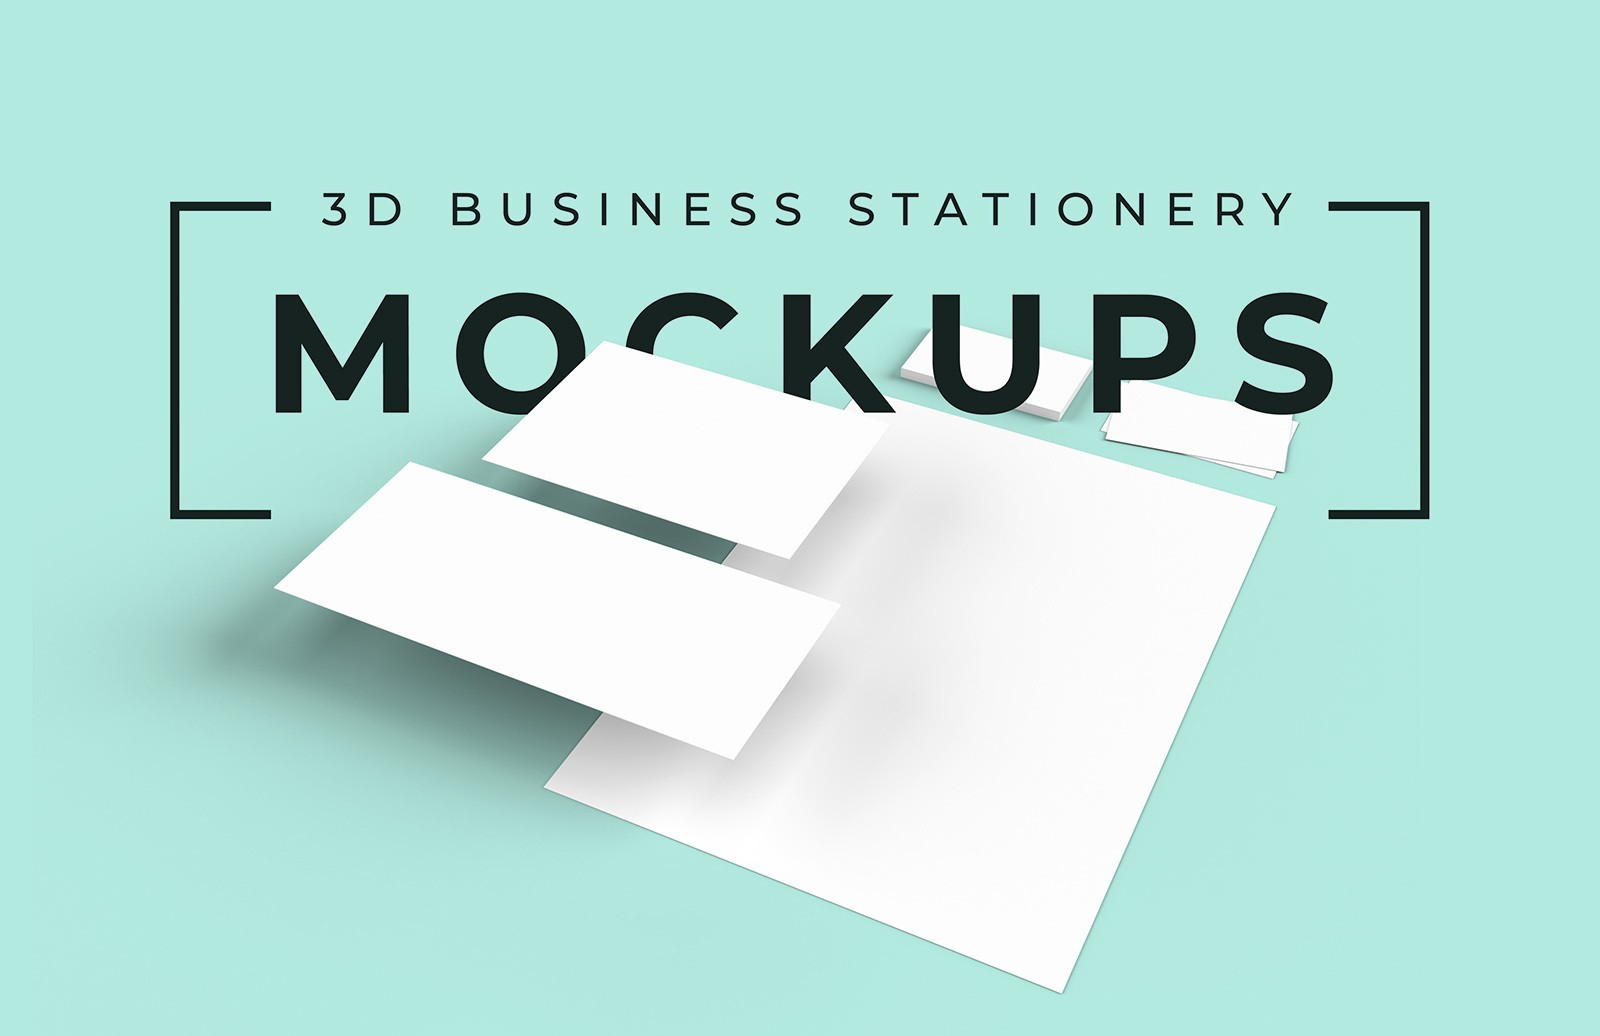 3 D Business Stationery Mockups Preview 1